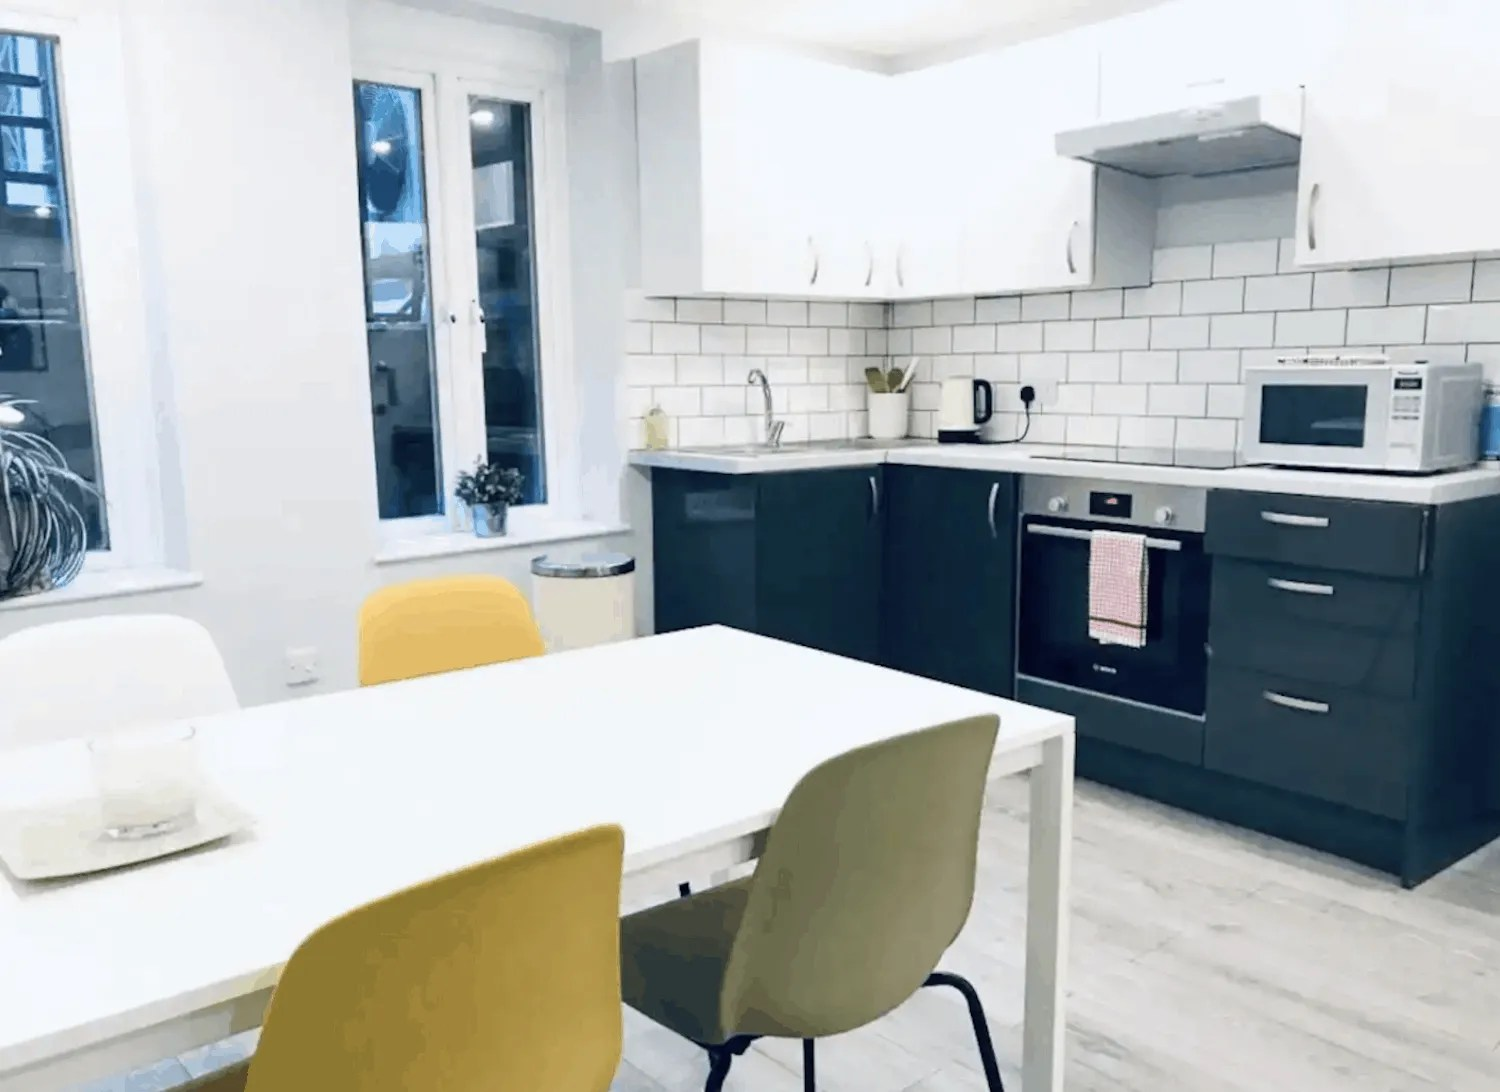 Budget London Airbnbs - Cavendish